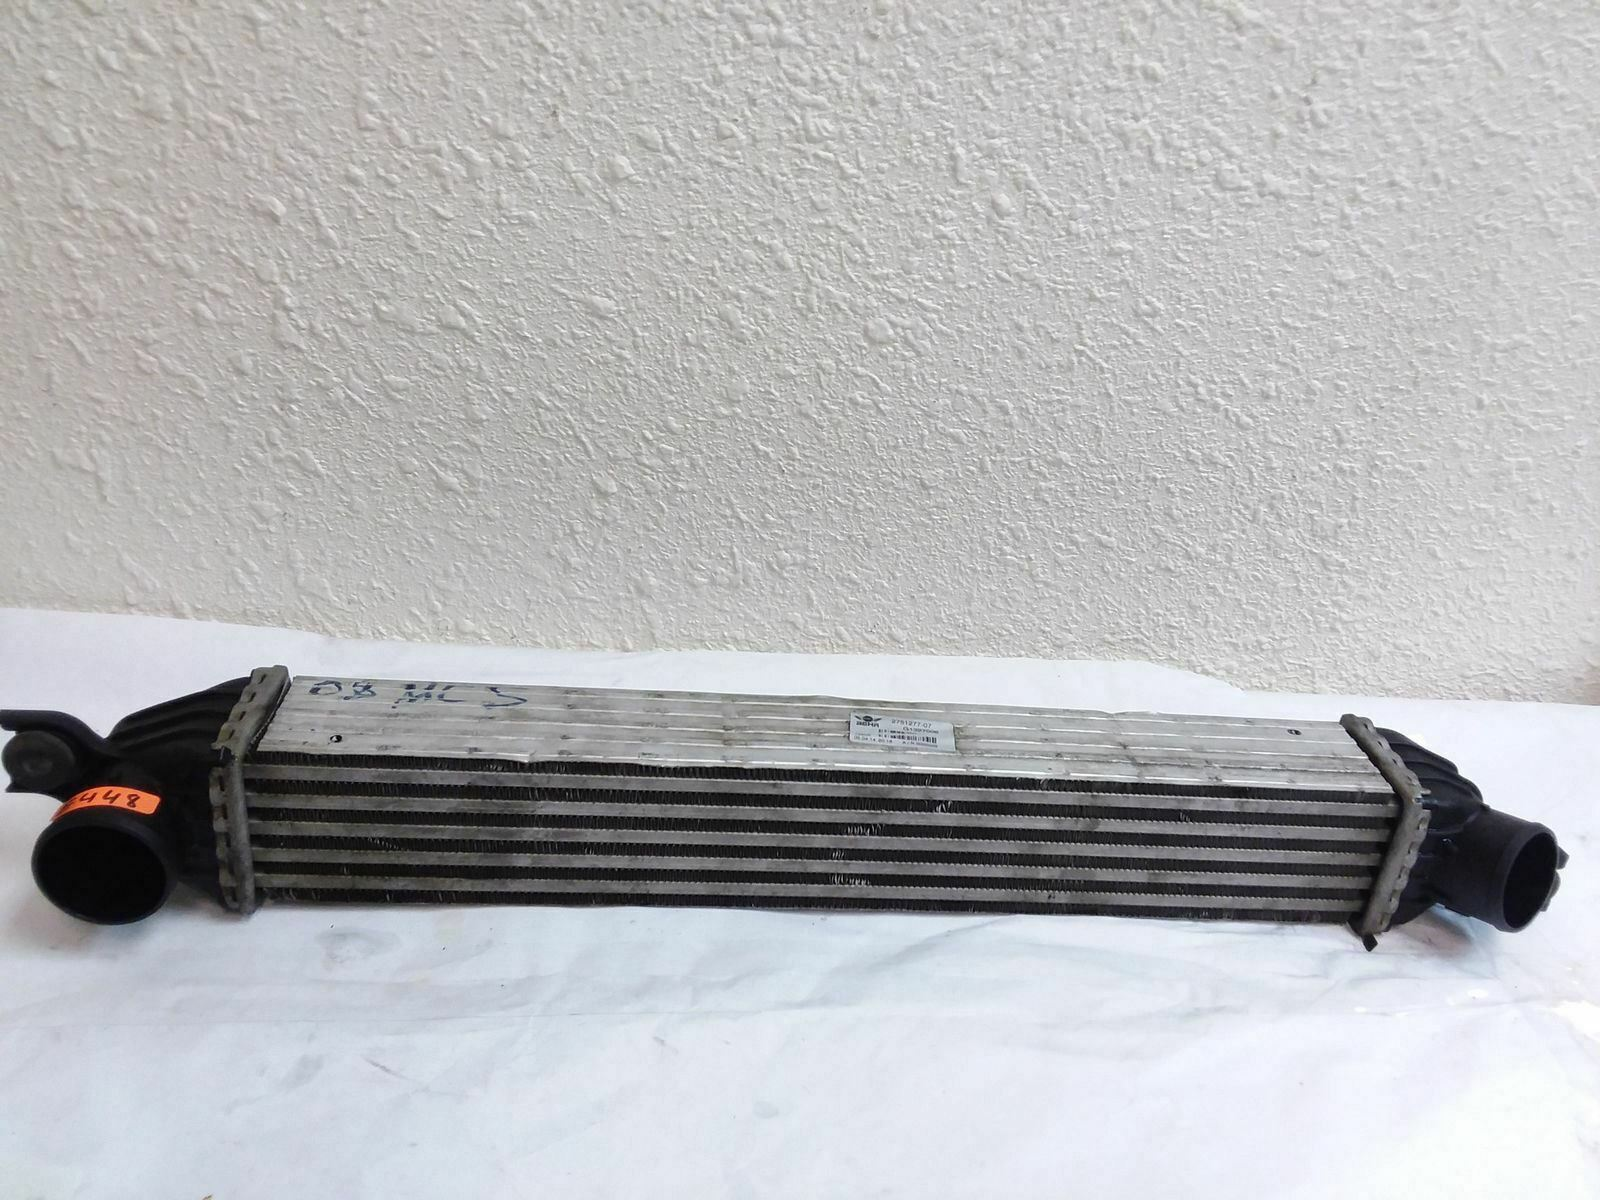 07-15 mini cooper s R55 R56 R57 R58 R59 R60 R61 oem charge intercooler 2751277 - Click Receive Auto Parts